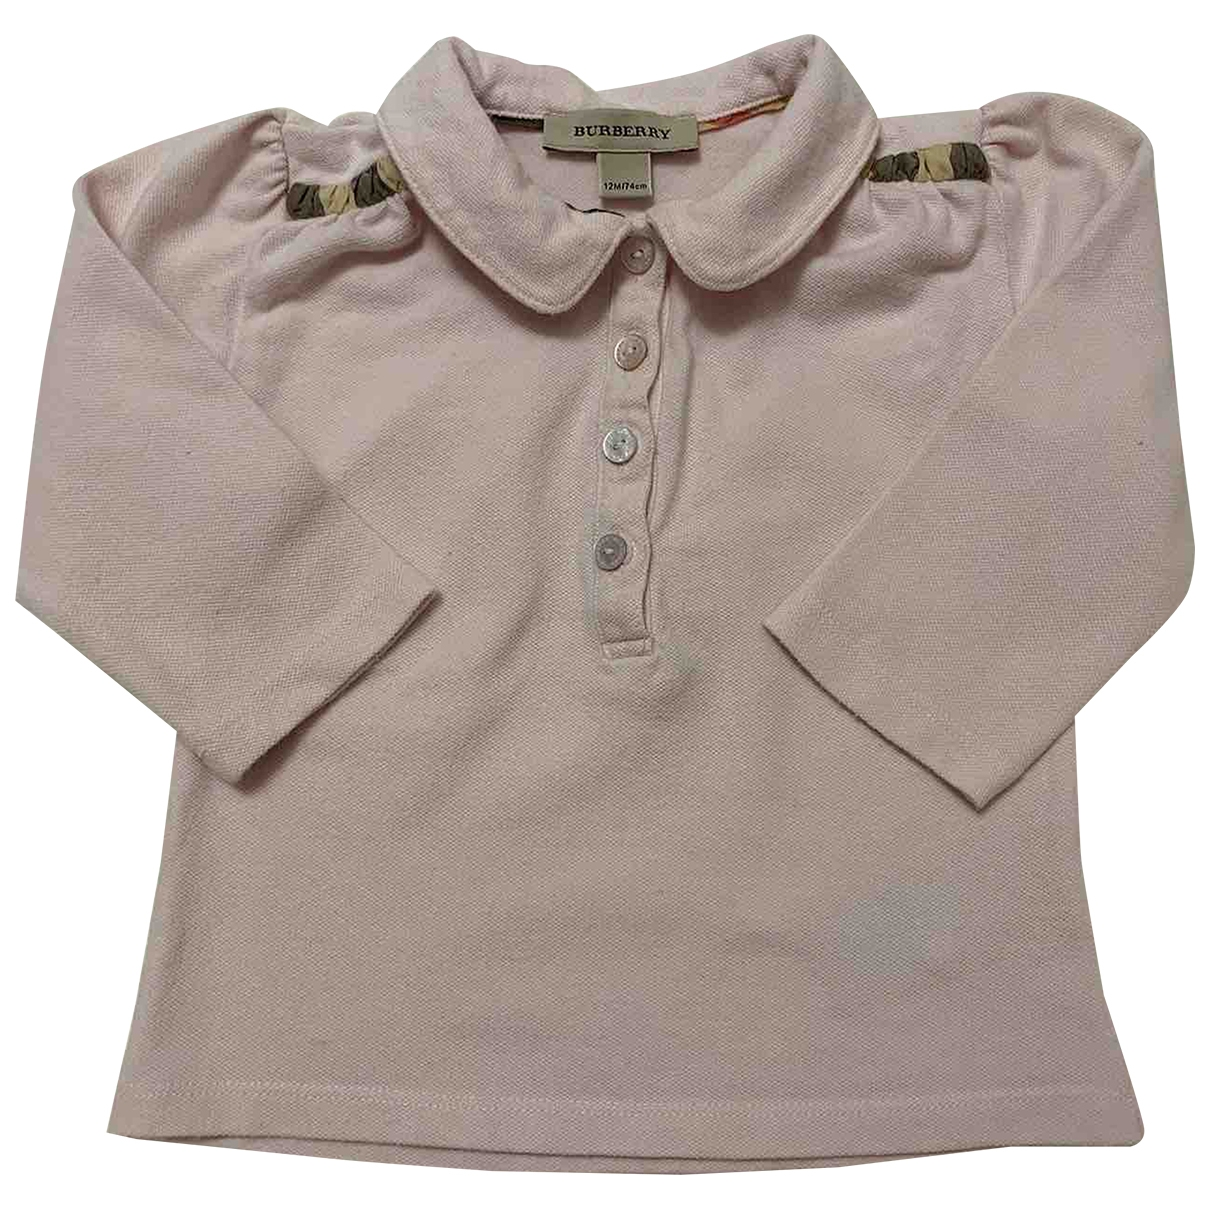 Burberry \N Pink Cotton  top for Kids 12 months - until 29 inches UK